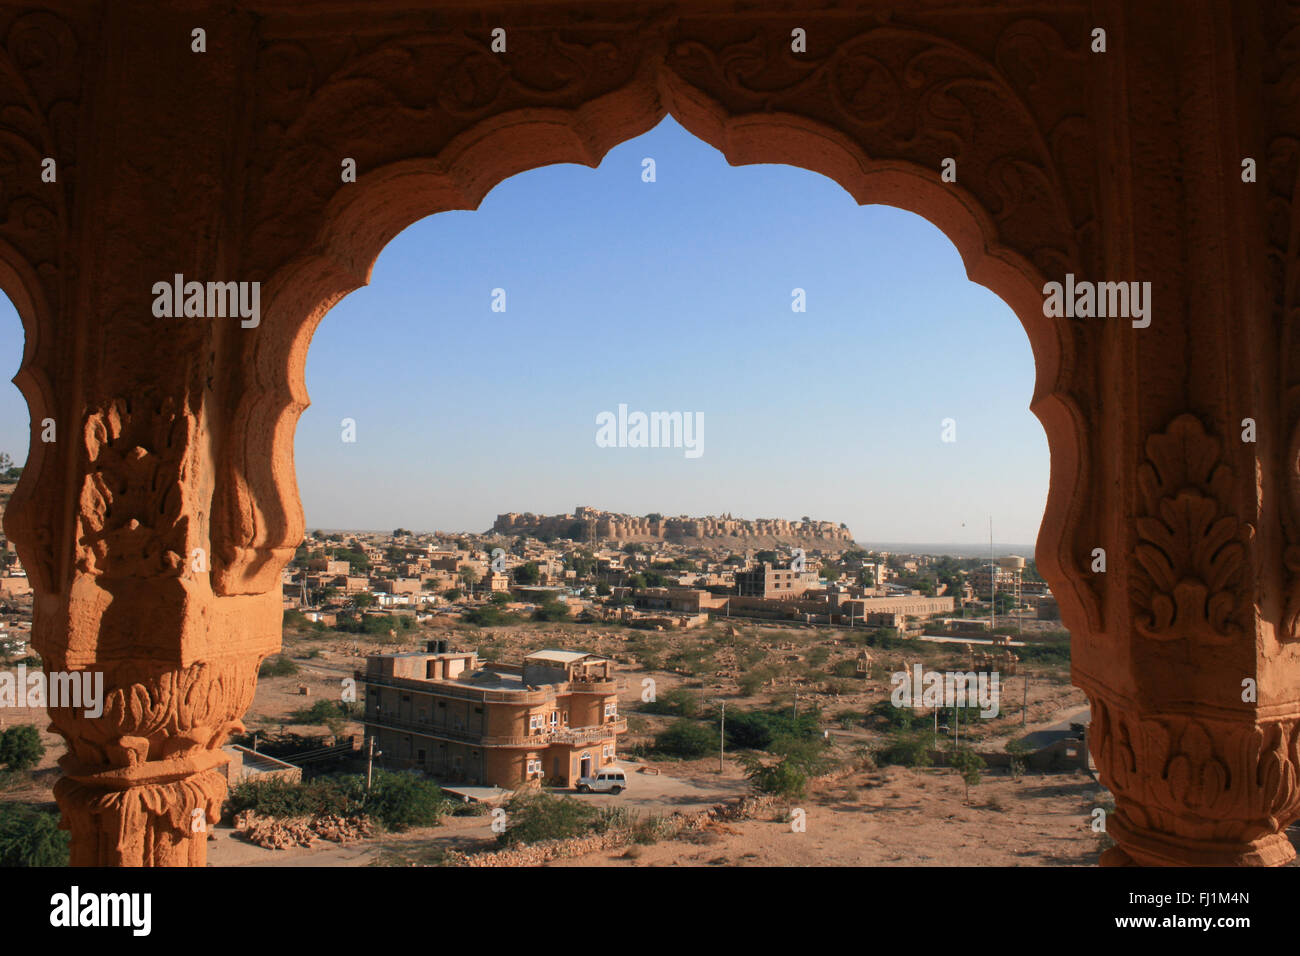 Amazing panoramic view on Jaisalmer city, with fort fortress in the center, Rajasthan, India - Stock Image